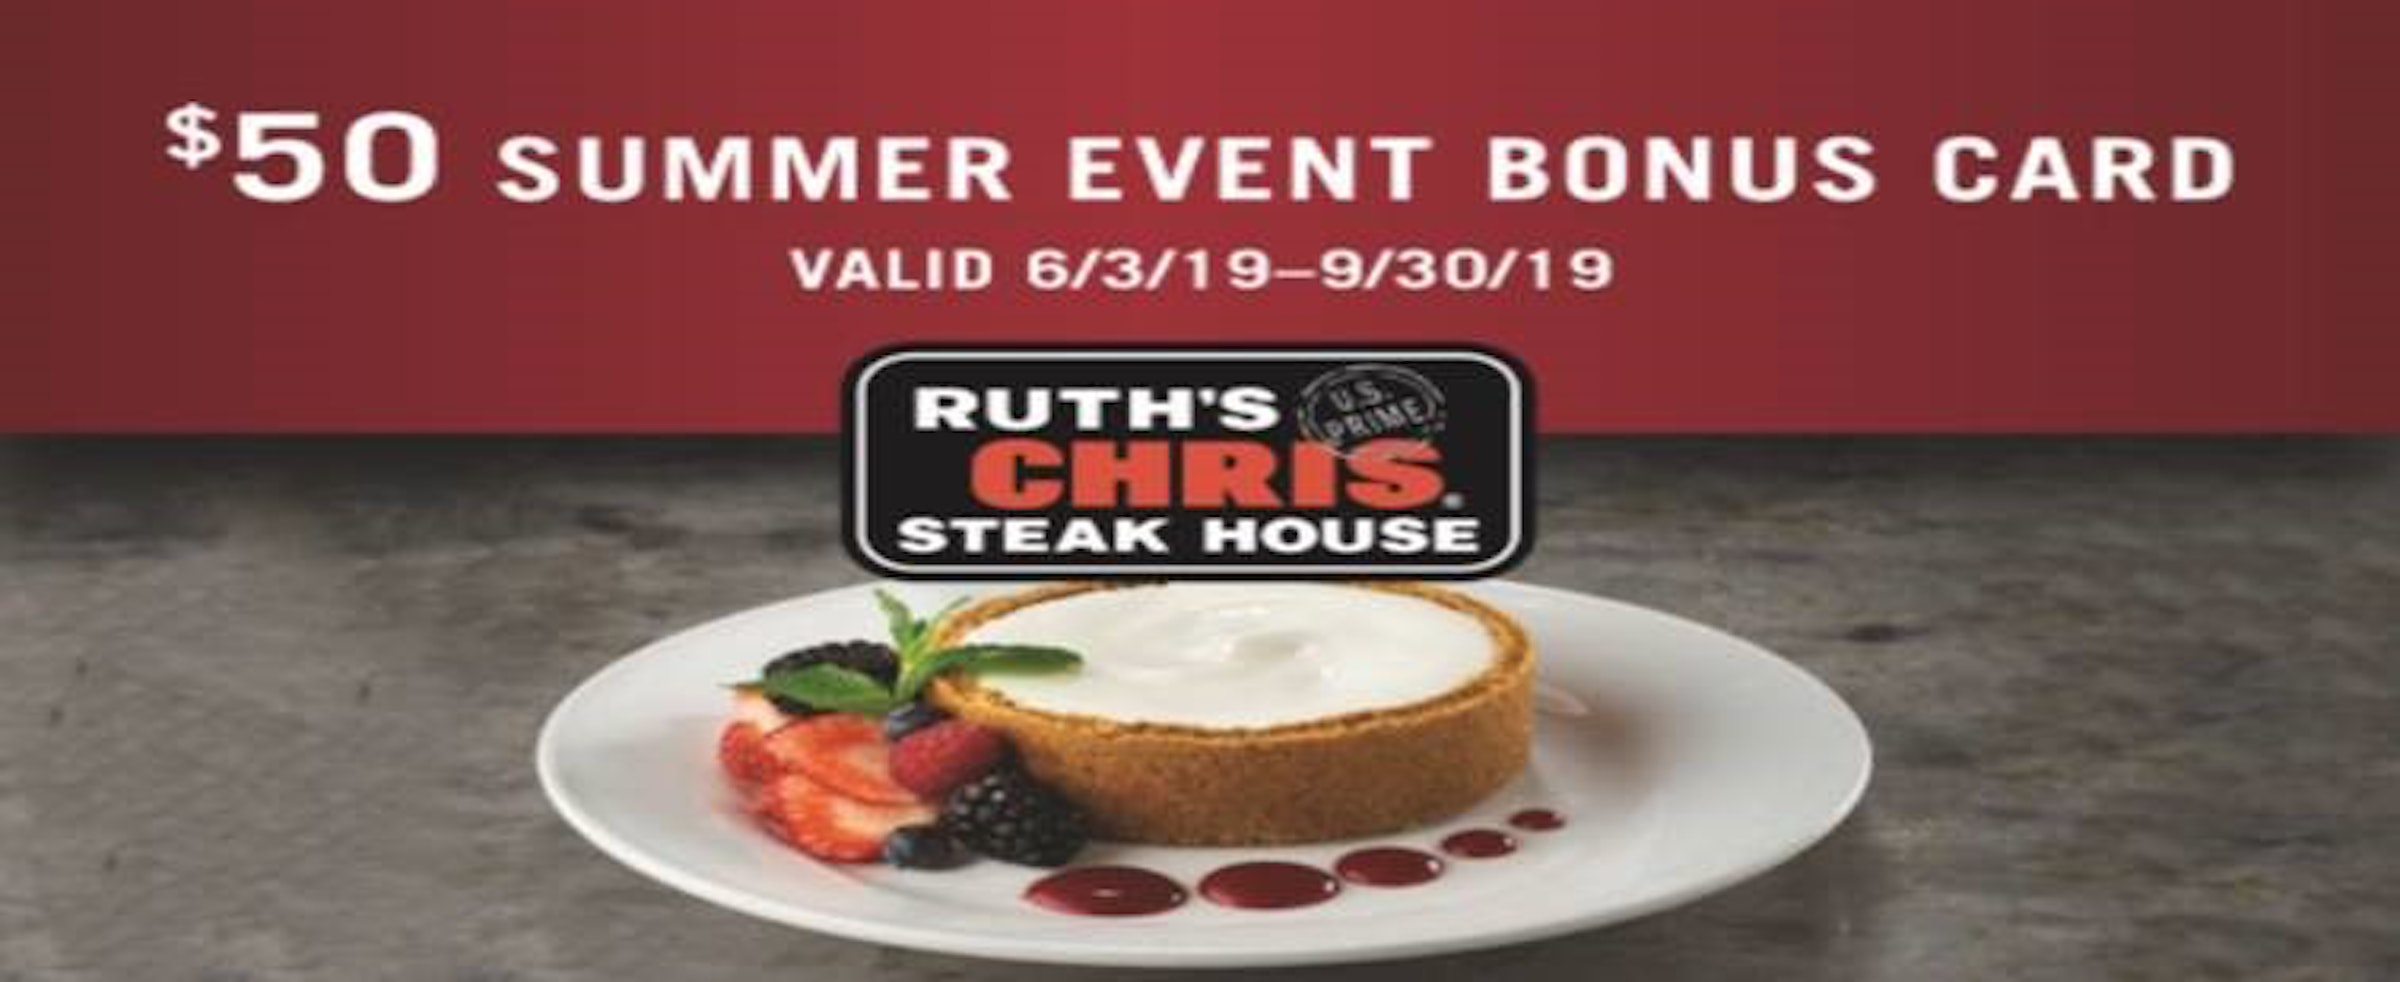 Ruth's Chris Steak House Dallas-Uptown in Beyond Dallas